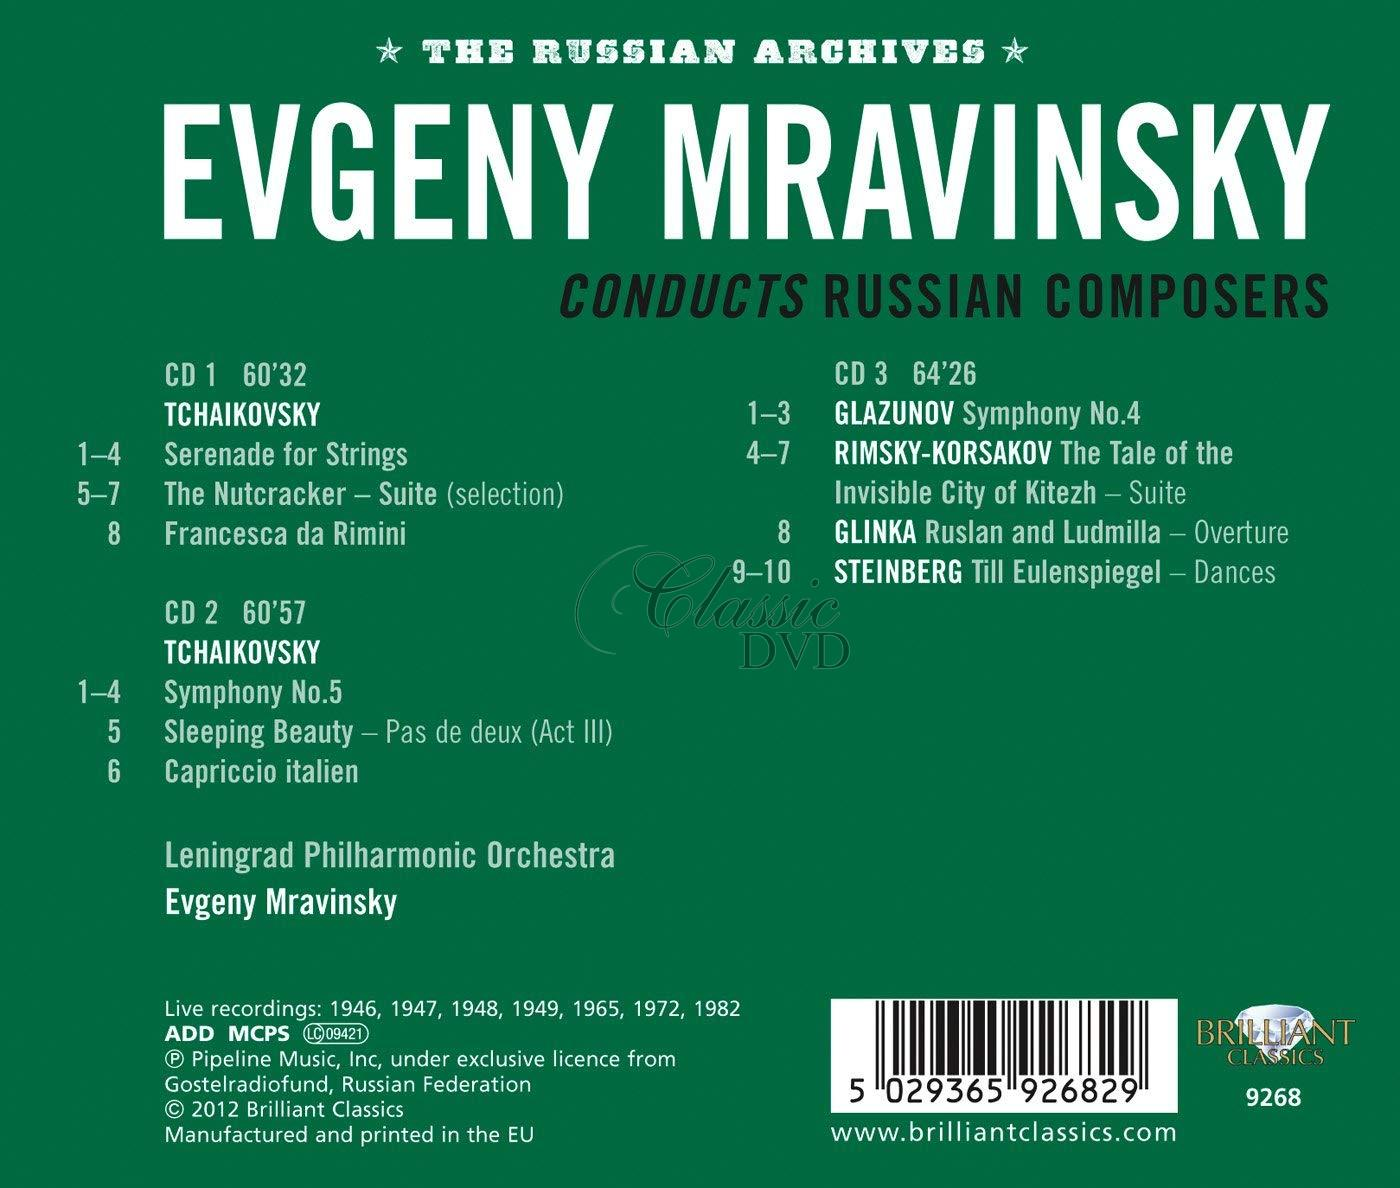 Evgeny Mravinsky conducts Russian composers (3CD)